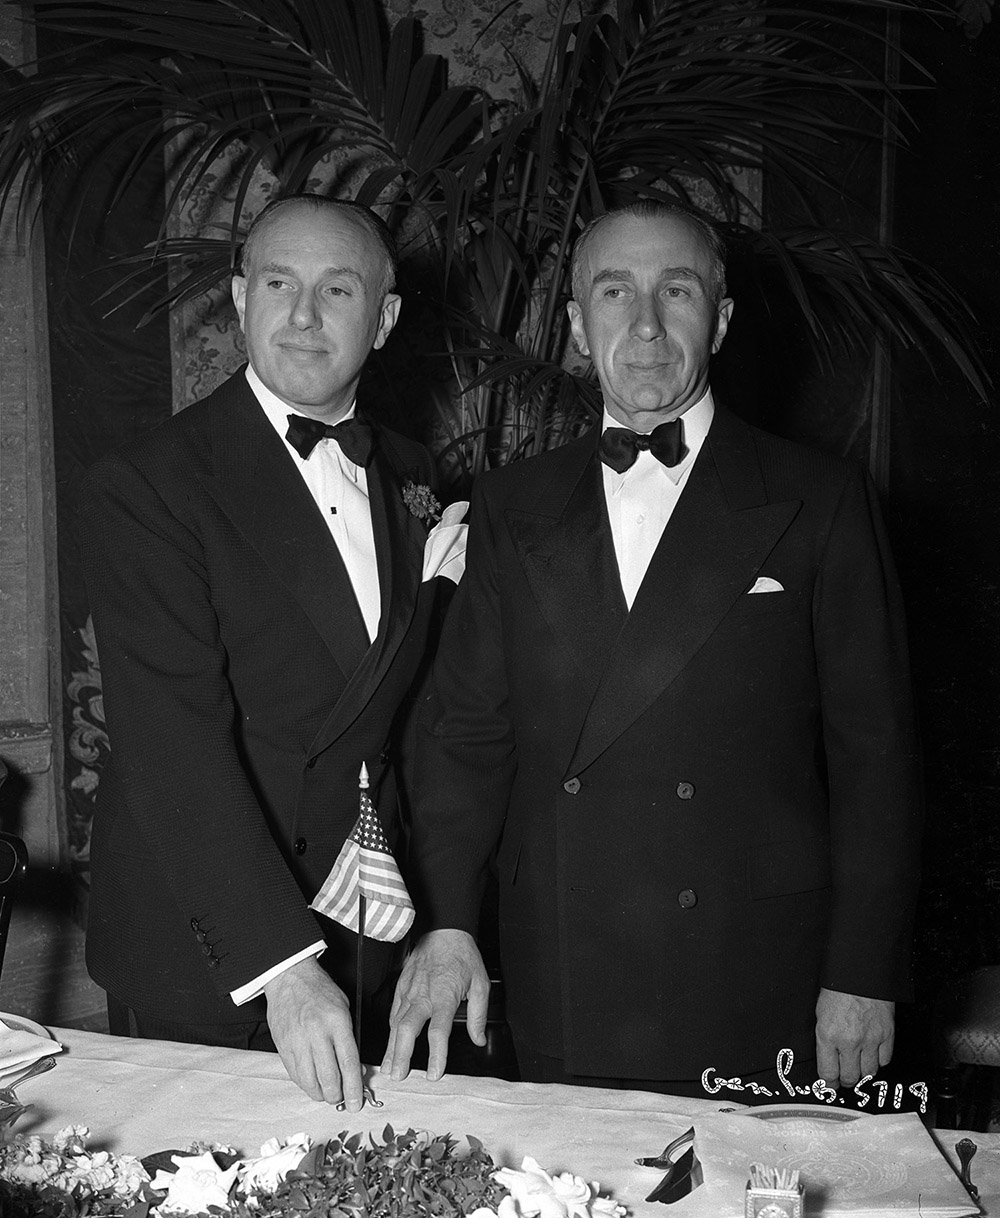 Confession of a Nazi Spy - Jack Warner and Harry Warner